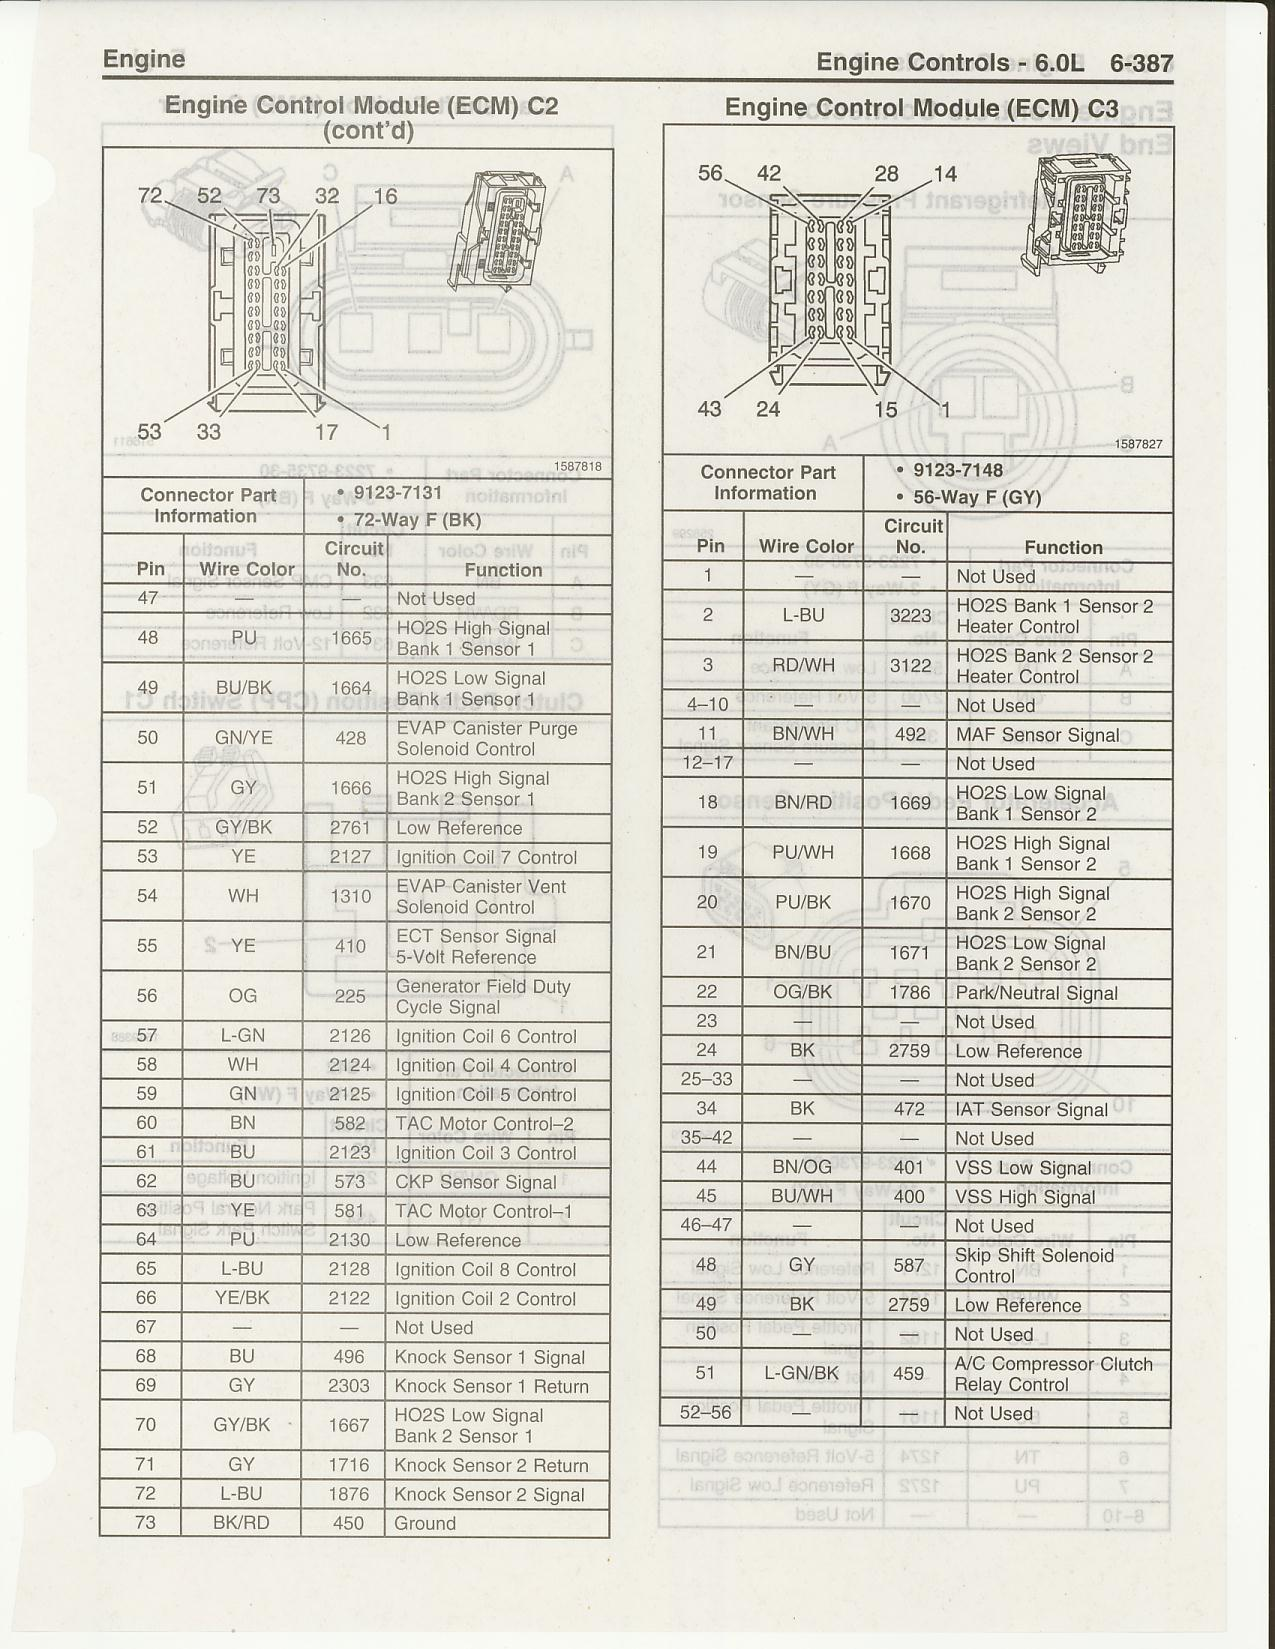 Ls3 Engine Controls Wiring Diagram Fuse Box Gm Lt1 Alternator Pinouts And Diagrams Page 4 Ls1tech Camaro Firebird Rh Com